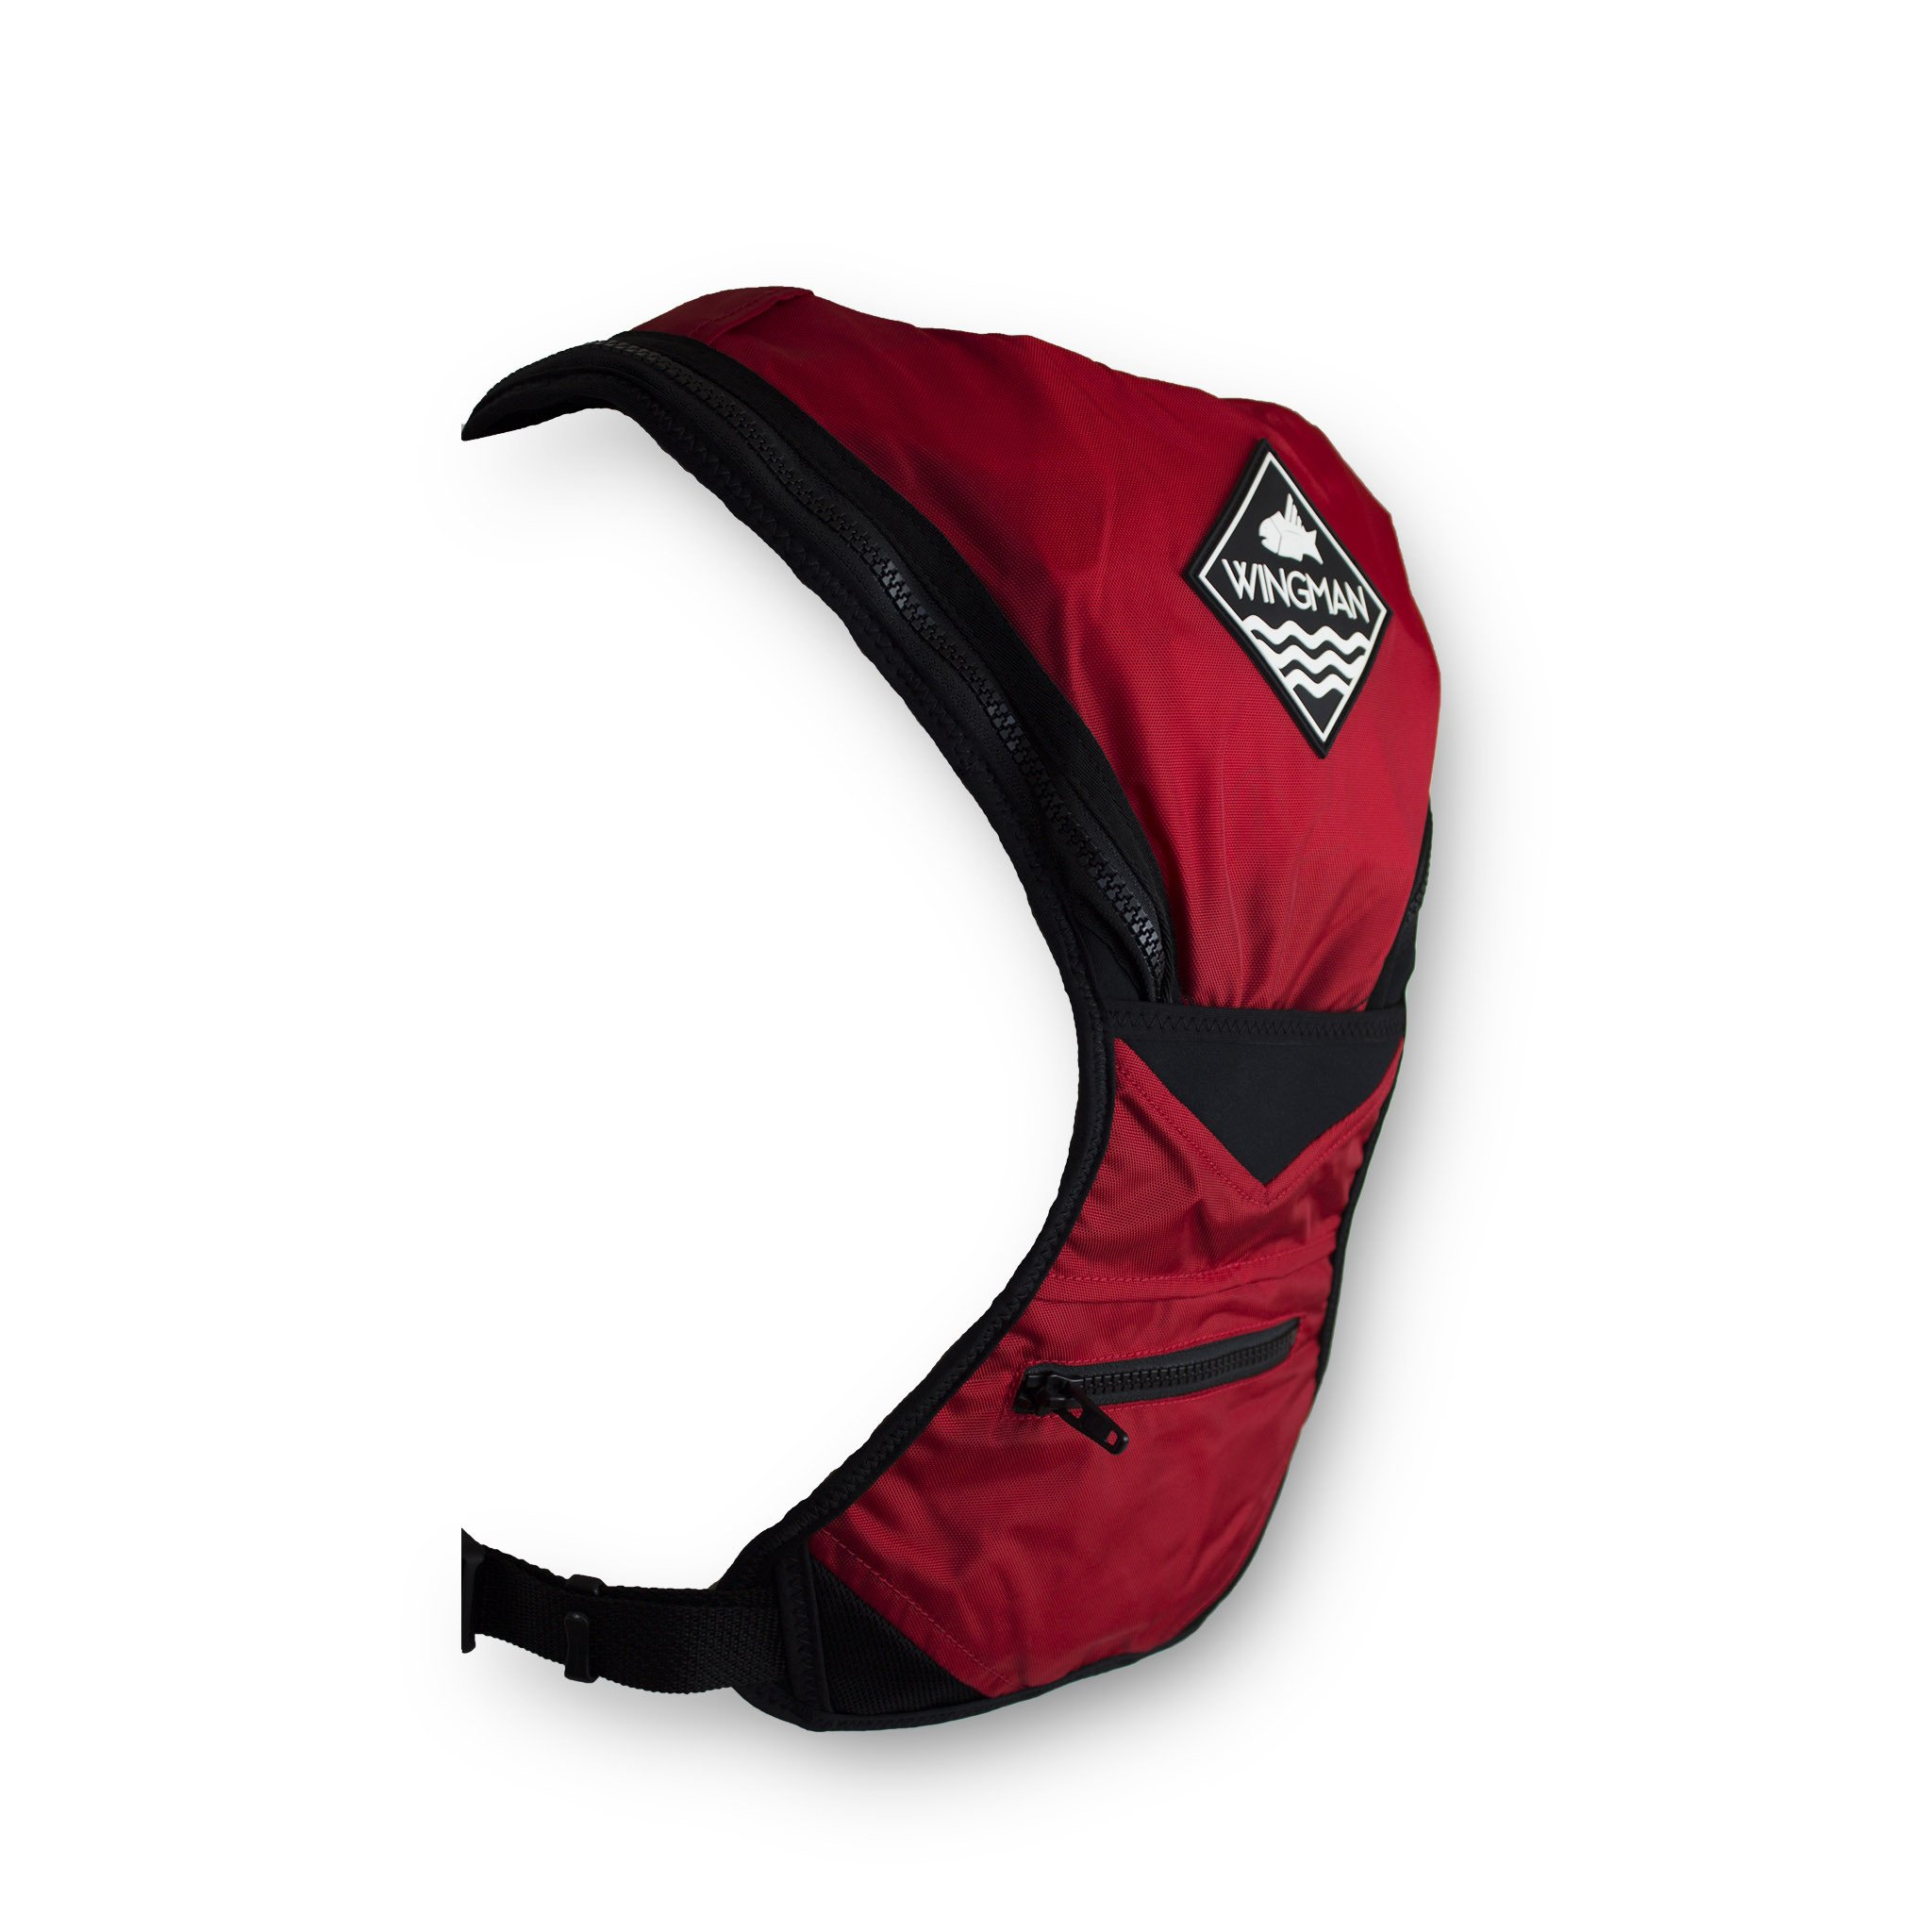 Buy Hyde Wingman Inflatable Life Jacket - Hyde Sportswear